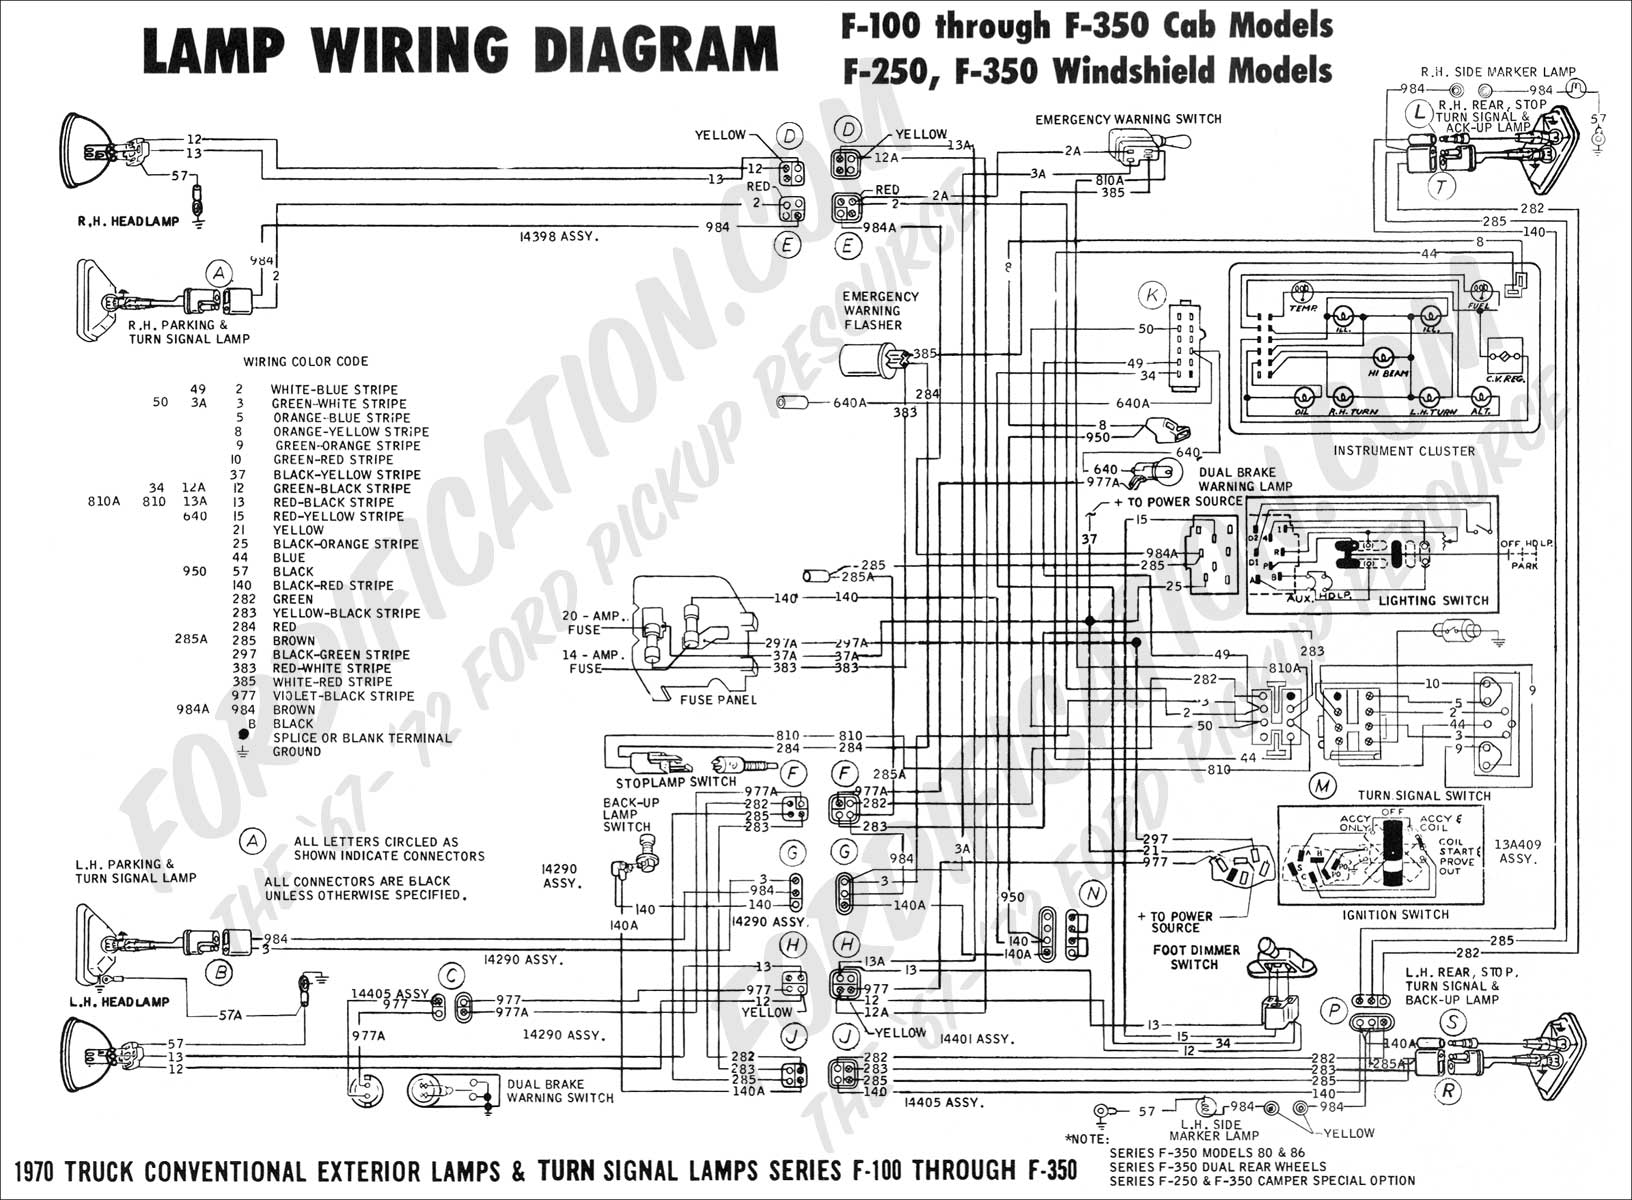 77 Silverado Wiring Harness 1979 Ford F150 Getting Ready With Diagram 1977 Todays Rh 3 Wwww 5 1813weddingbarn Com